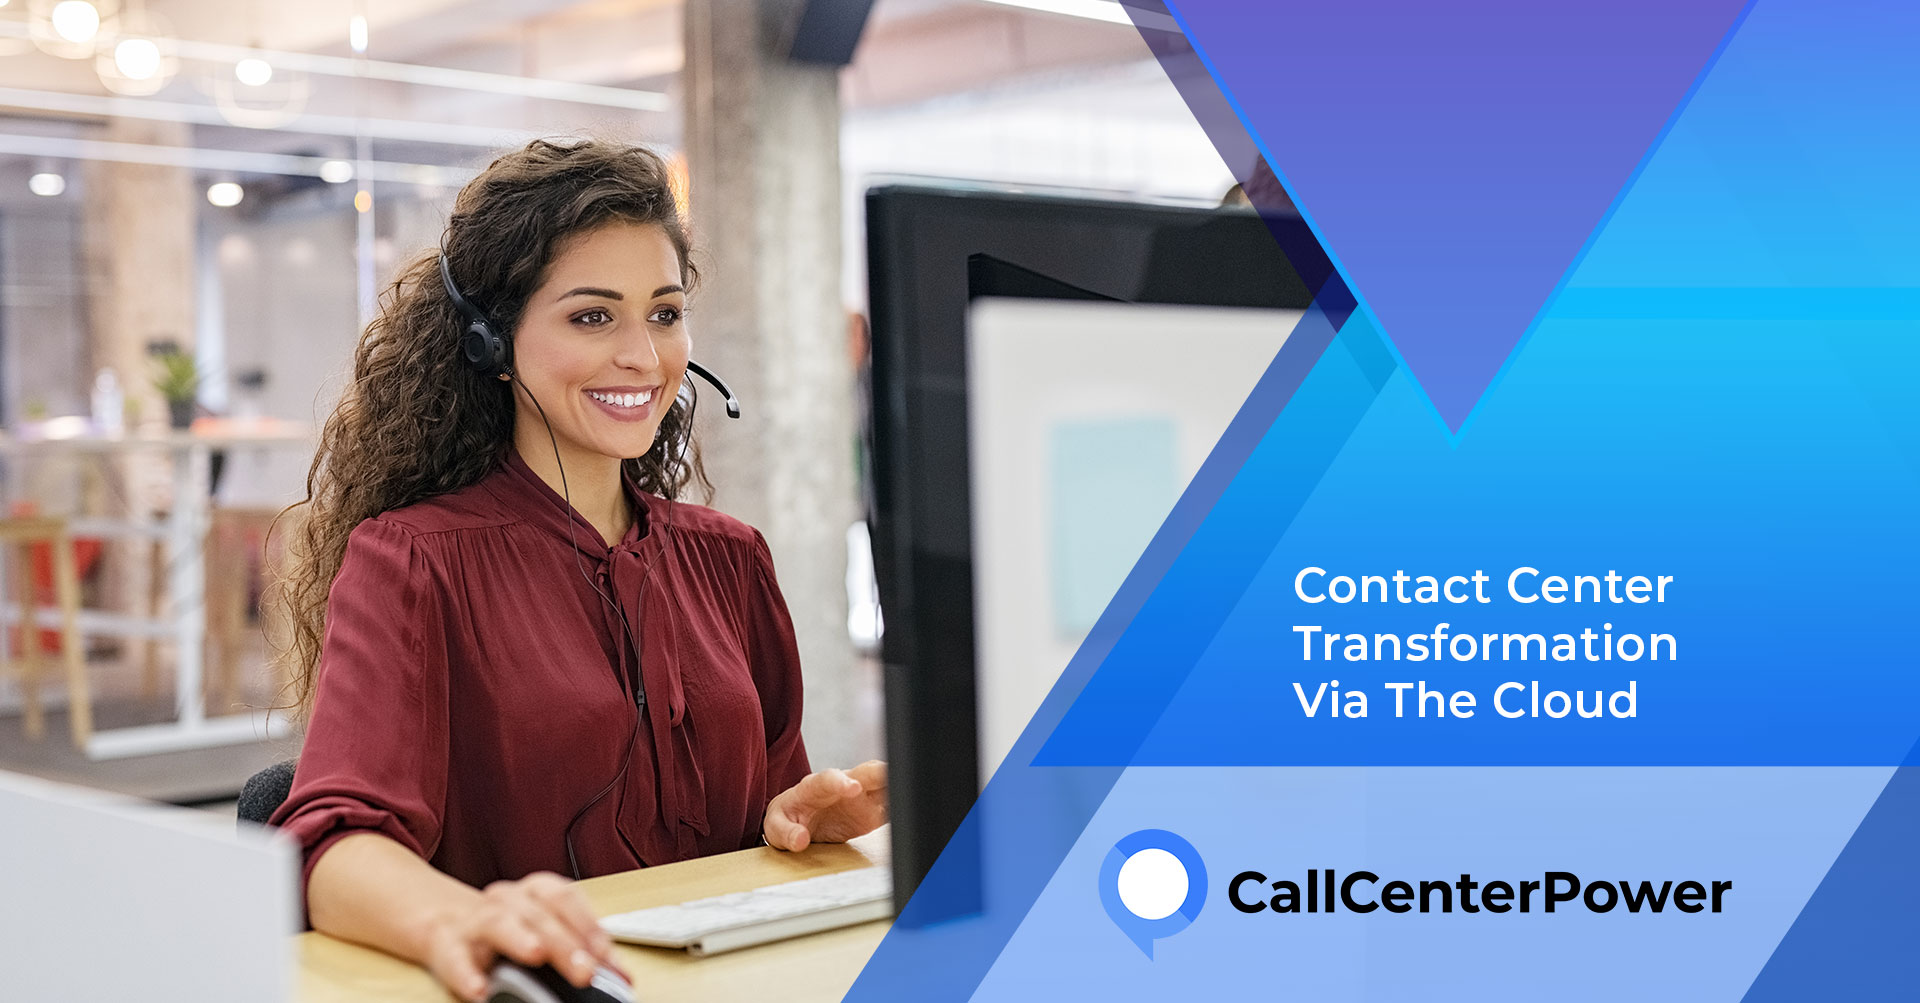 Contact Center Transformation Benefits of Using the Cloud